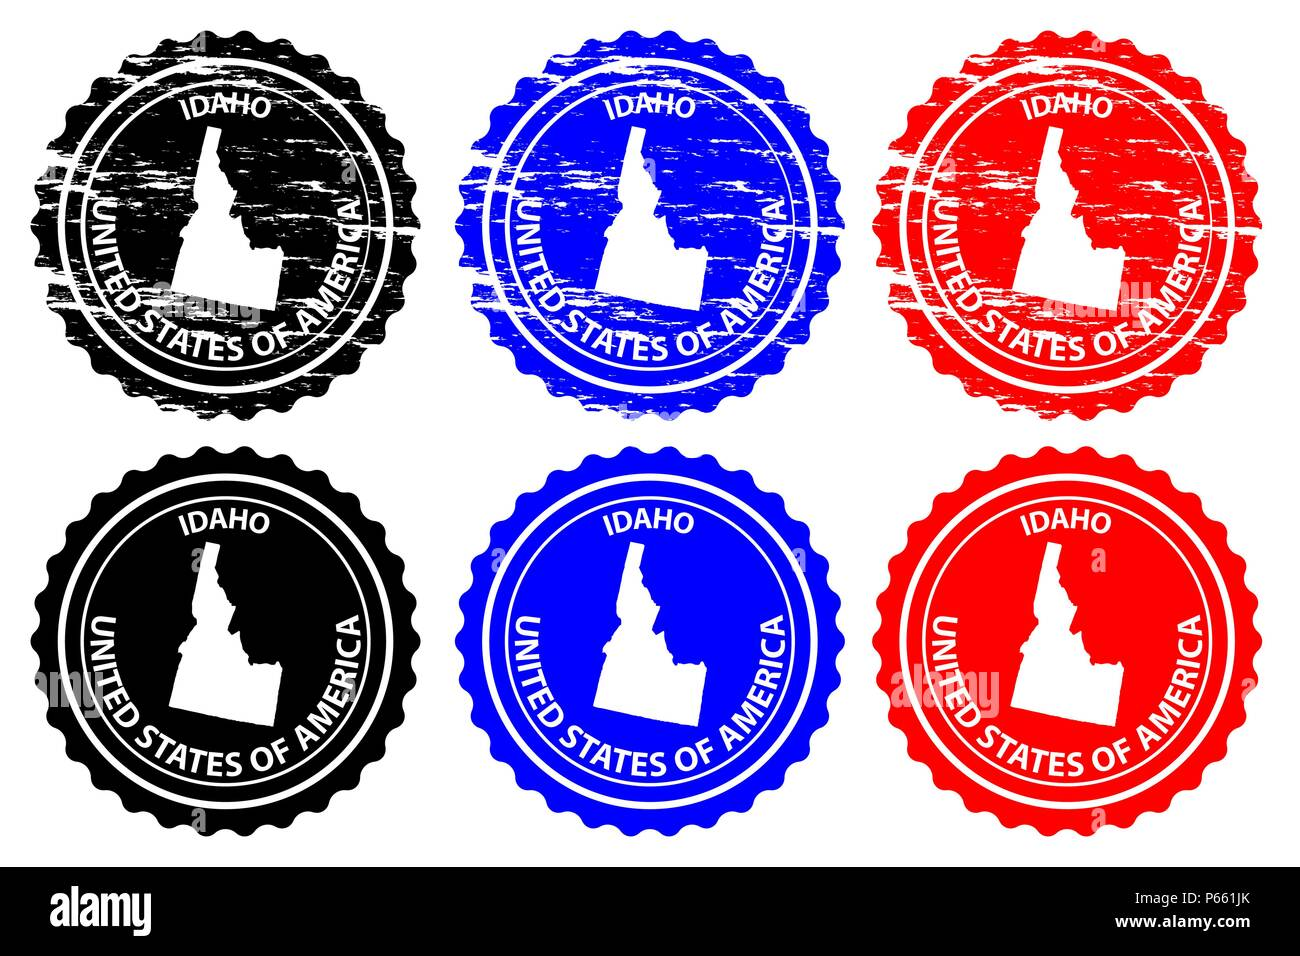 Idaho - rubber stamp - vector, Idaho (United States of America) map pattern - sticker - black, blue and red - Stock Vector